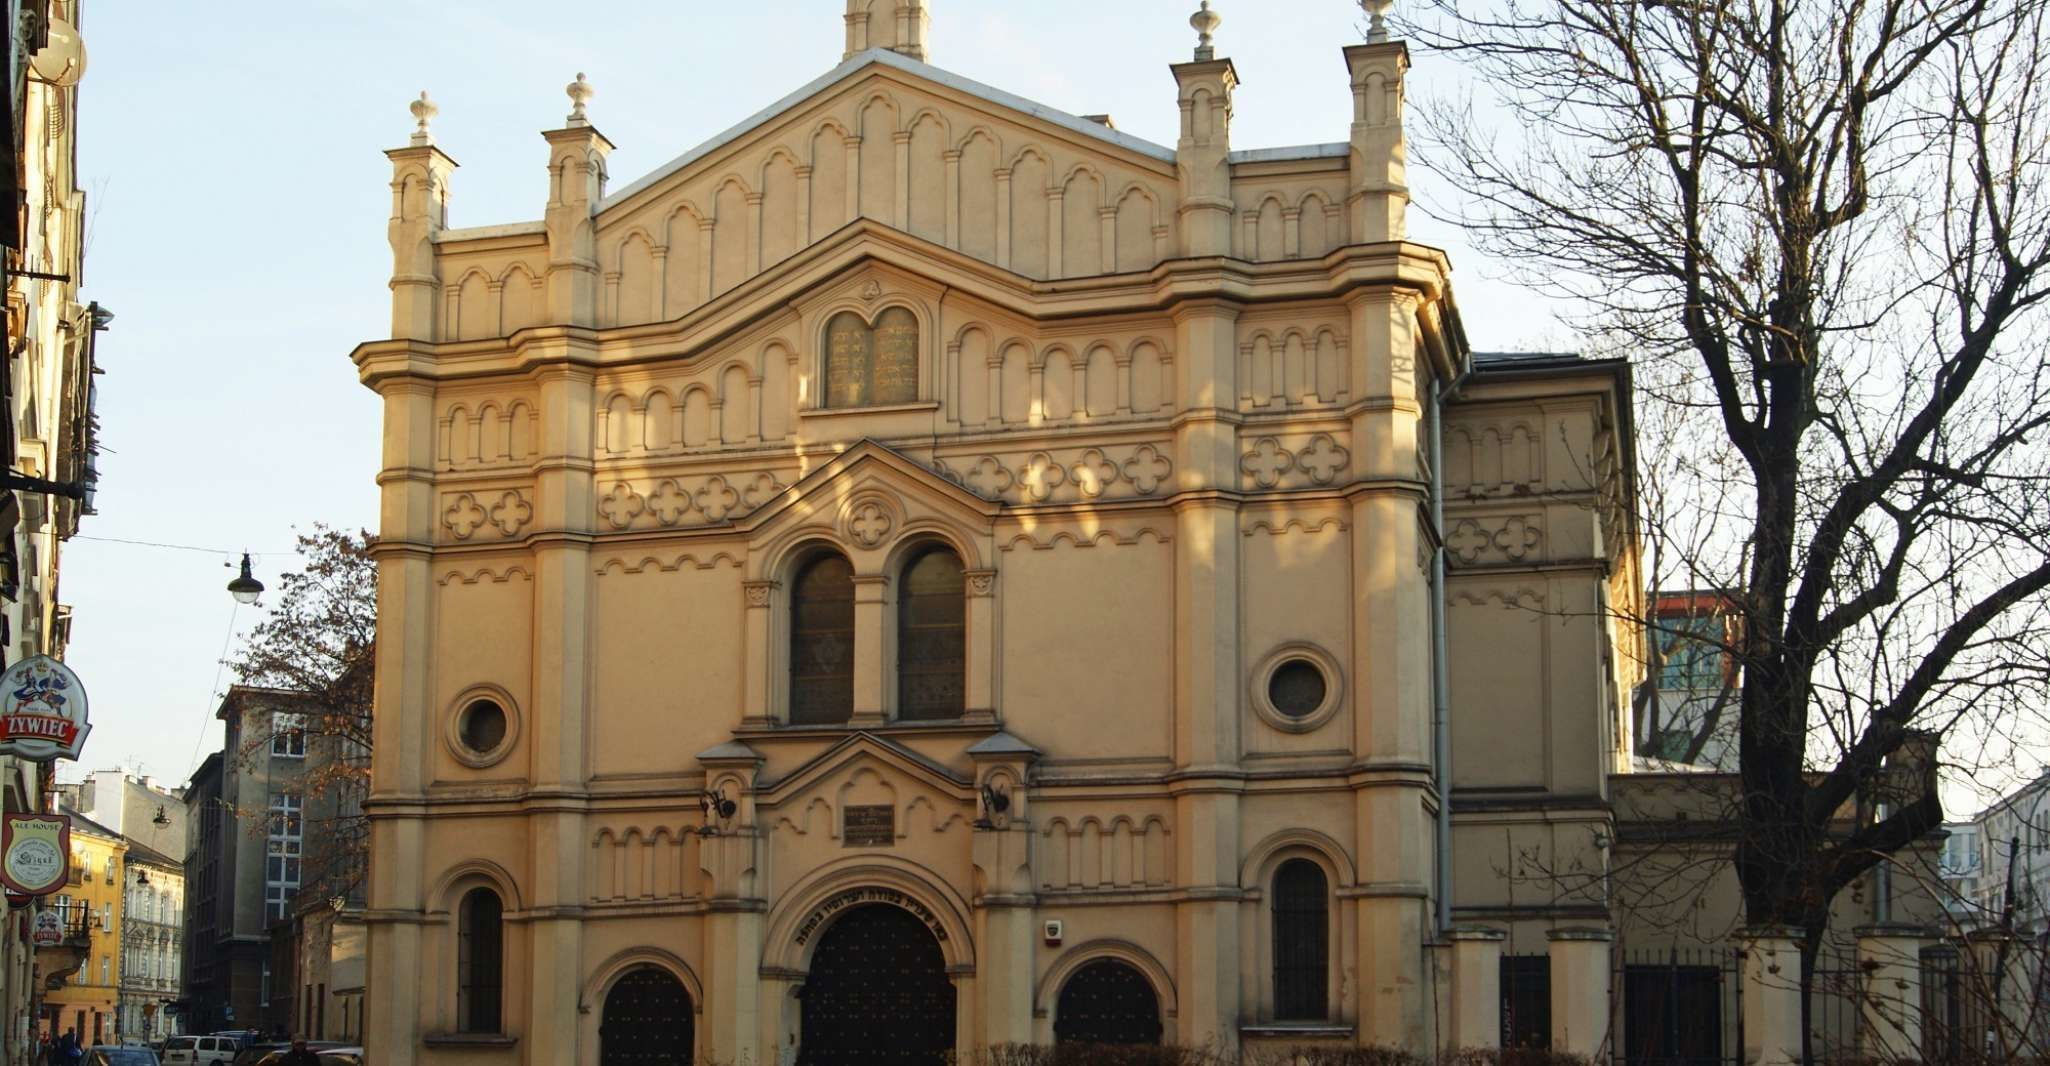 Krakow: Private Guided Tour with Transportation